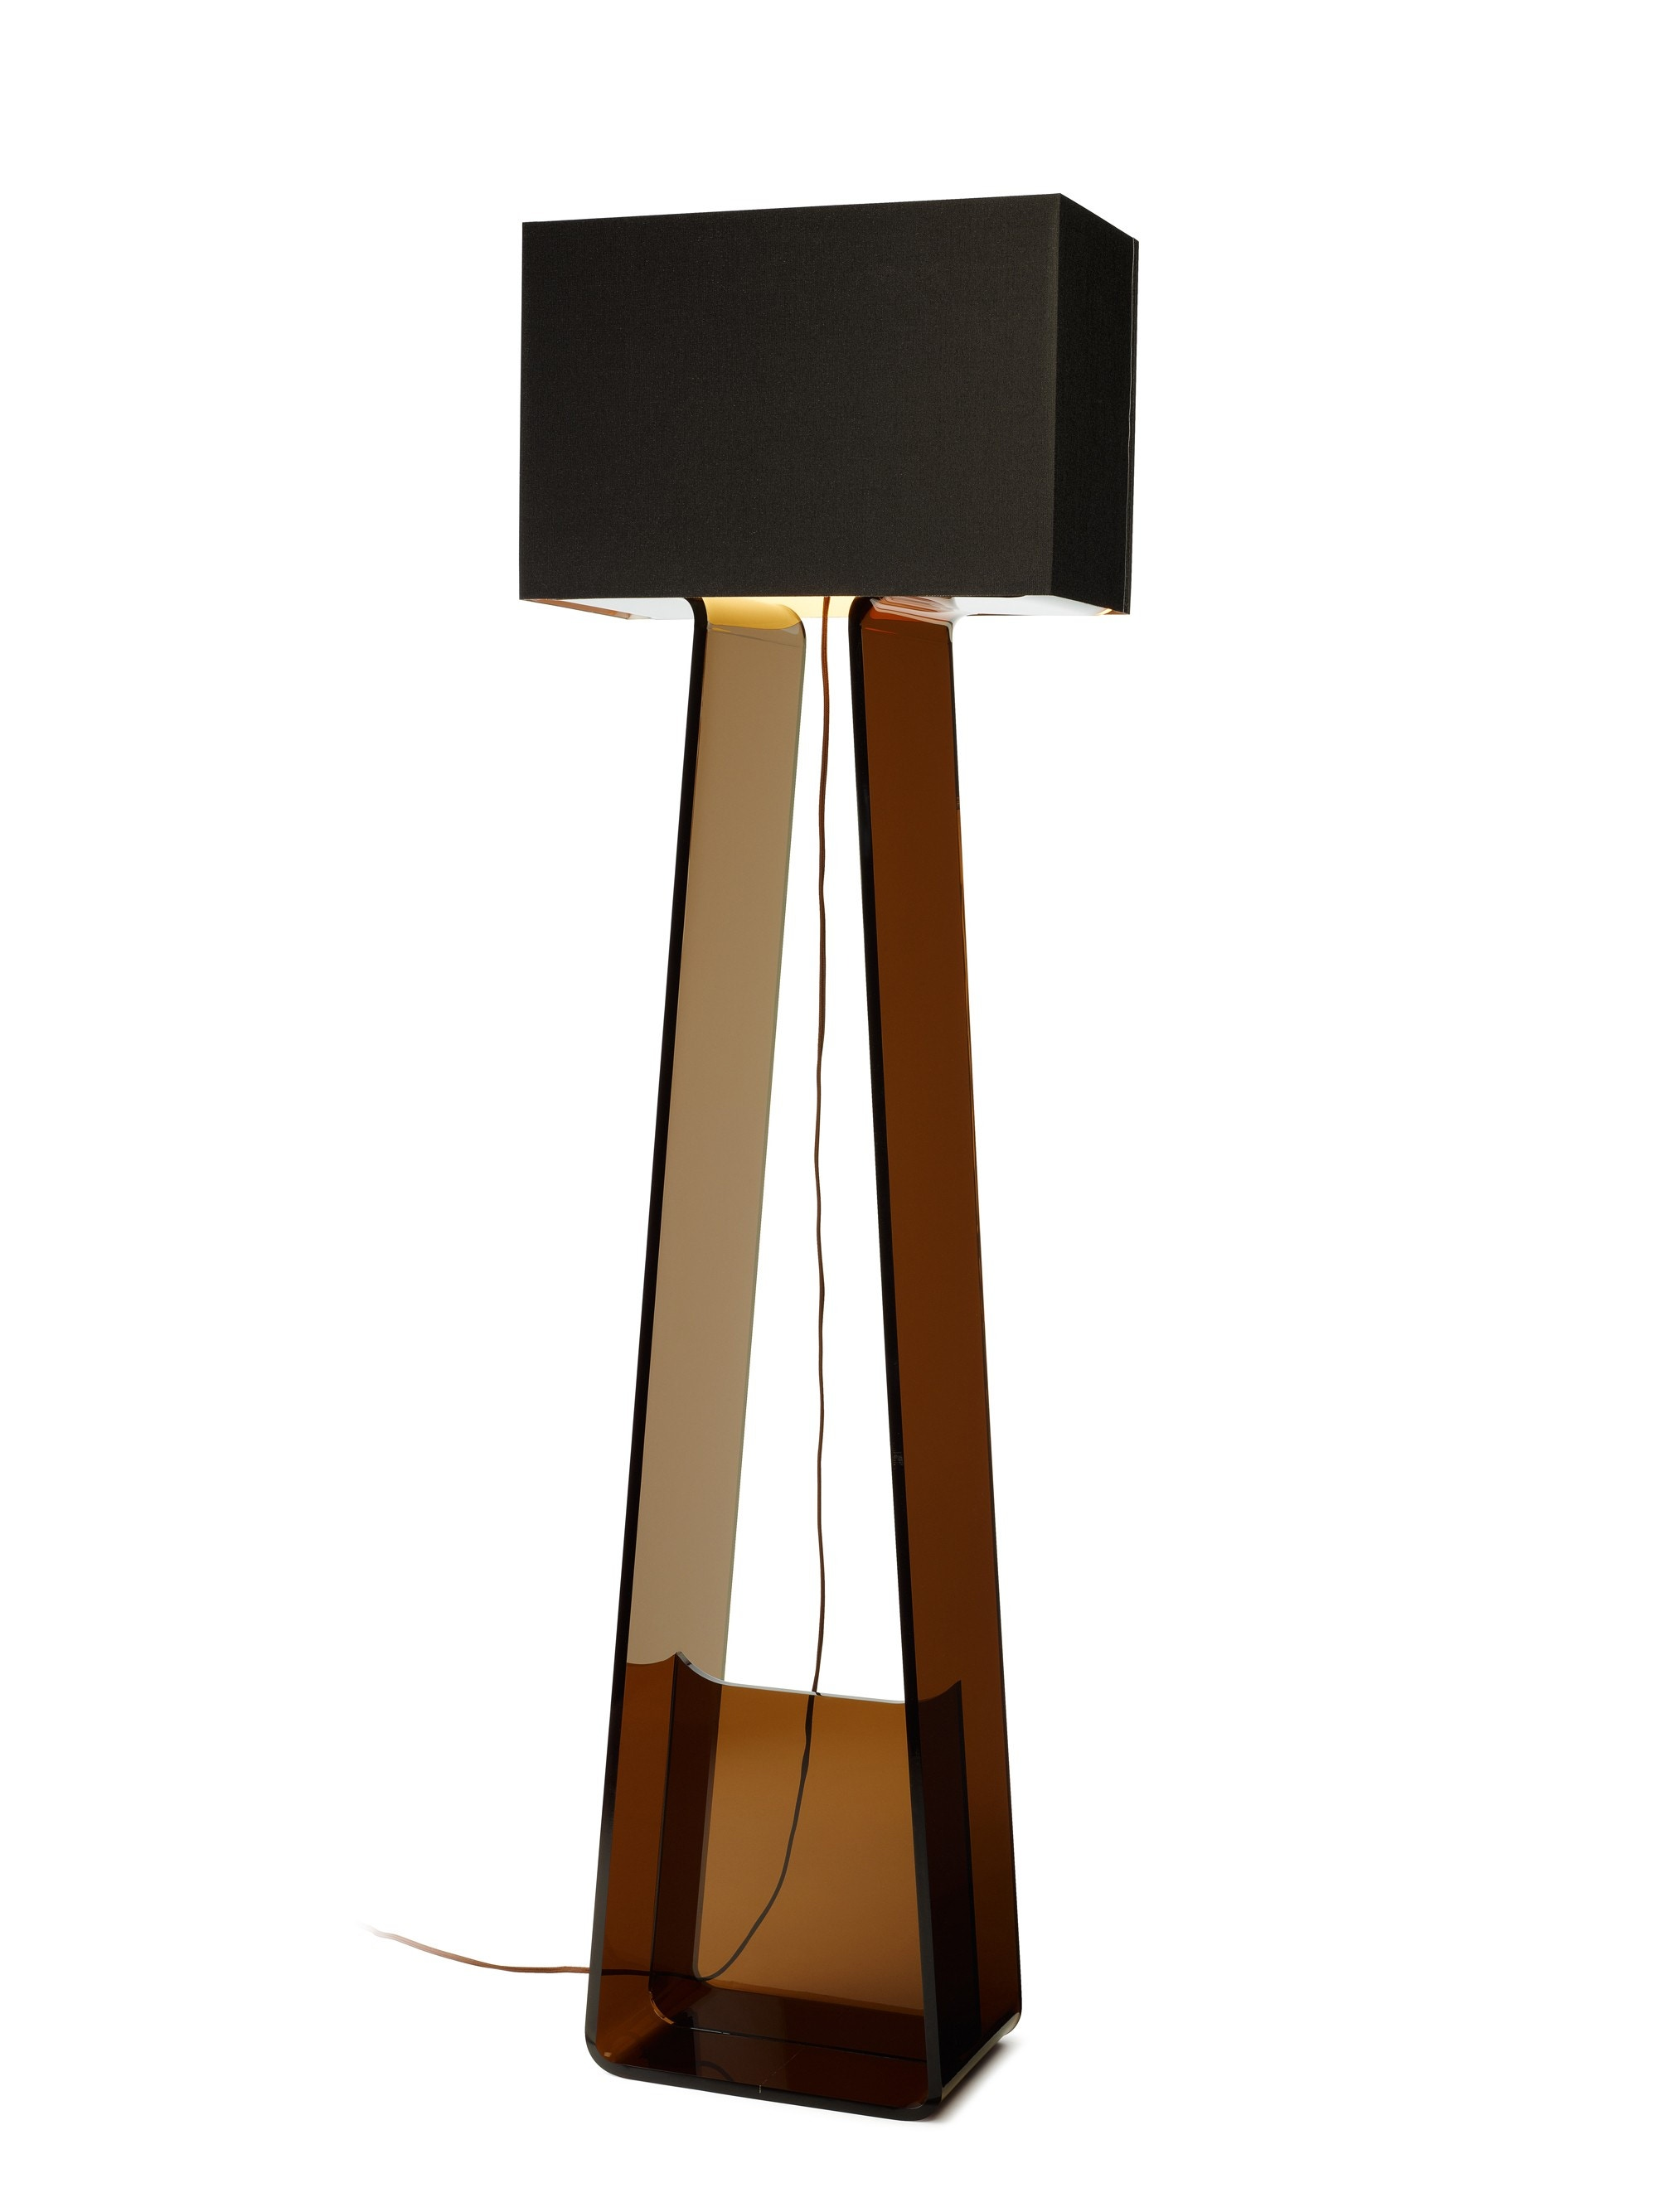 Pablo Tube Top Floor Lamp